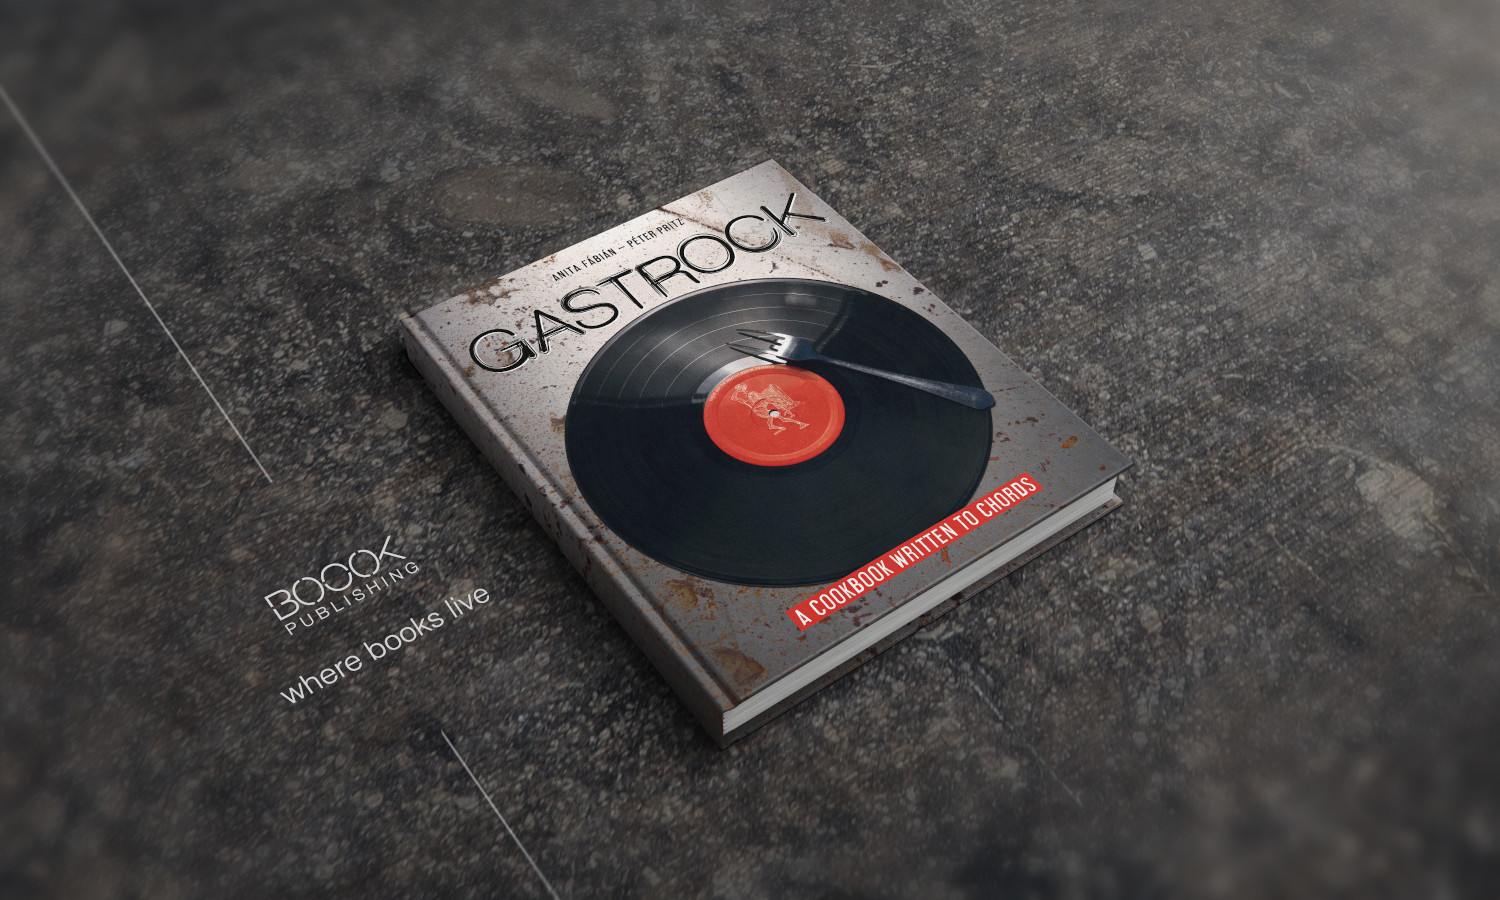 Gastrock: 'A Cookbook Written To Chords' Available In Hungary